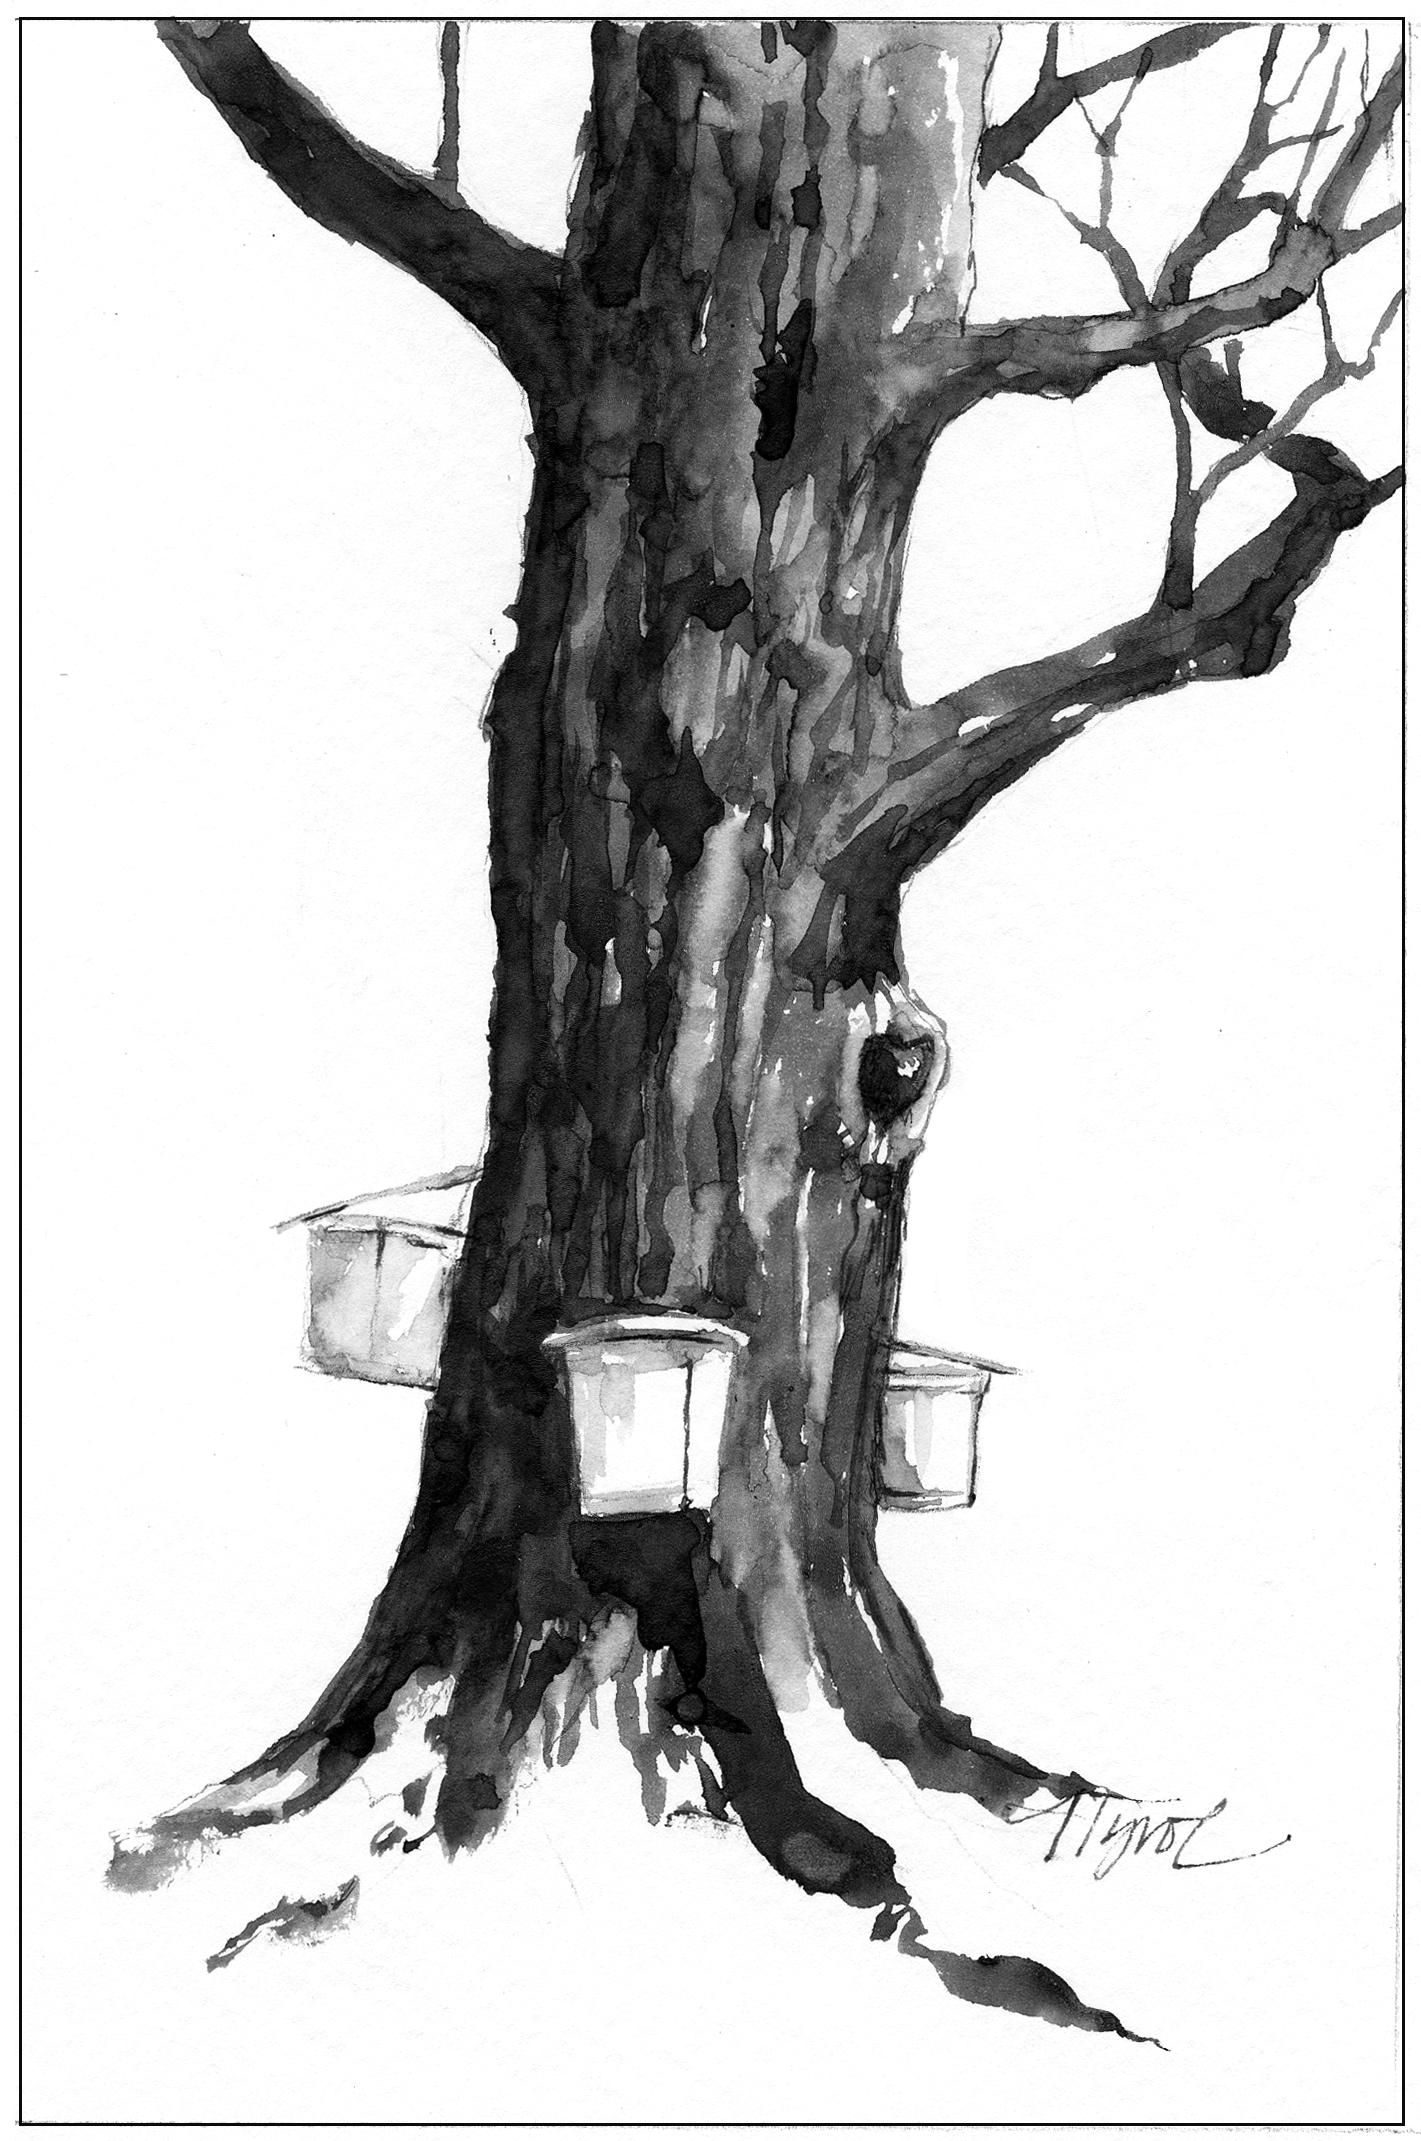 maple tree coloring page - maple sugaring do new tapping strategies hurt trees